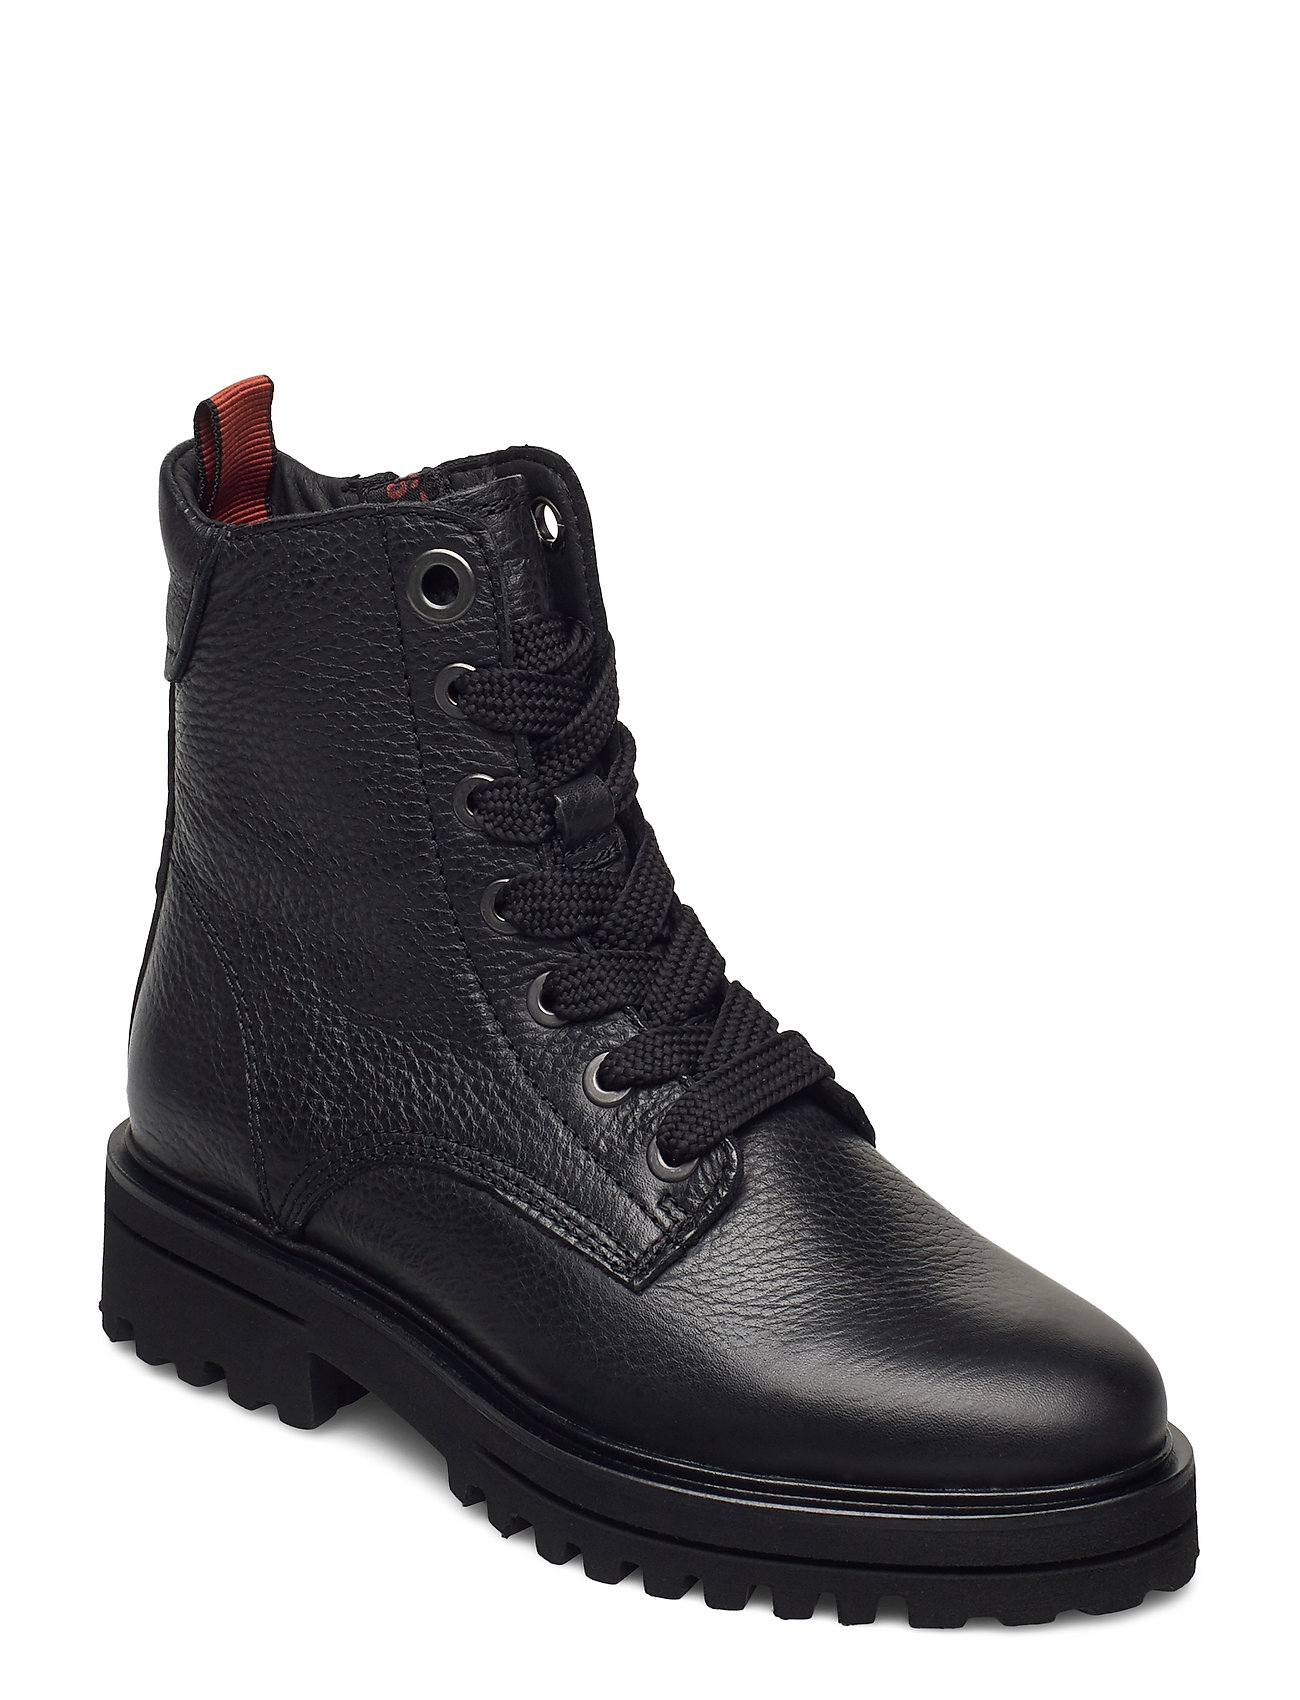 Image of Licia 5b Shoes Boots Ankle Boots Ankle Boot - Flat Sort Marc O'Polo Footwear (3452761847)